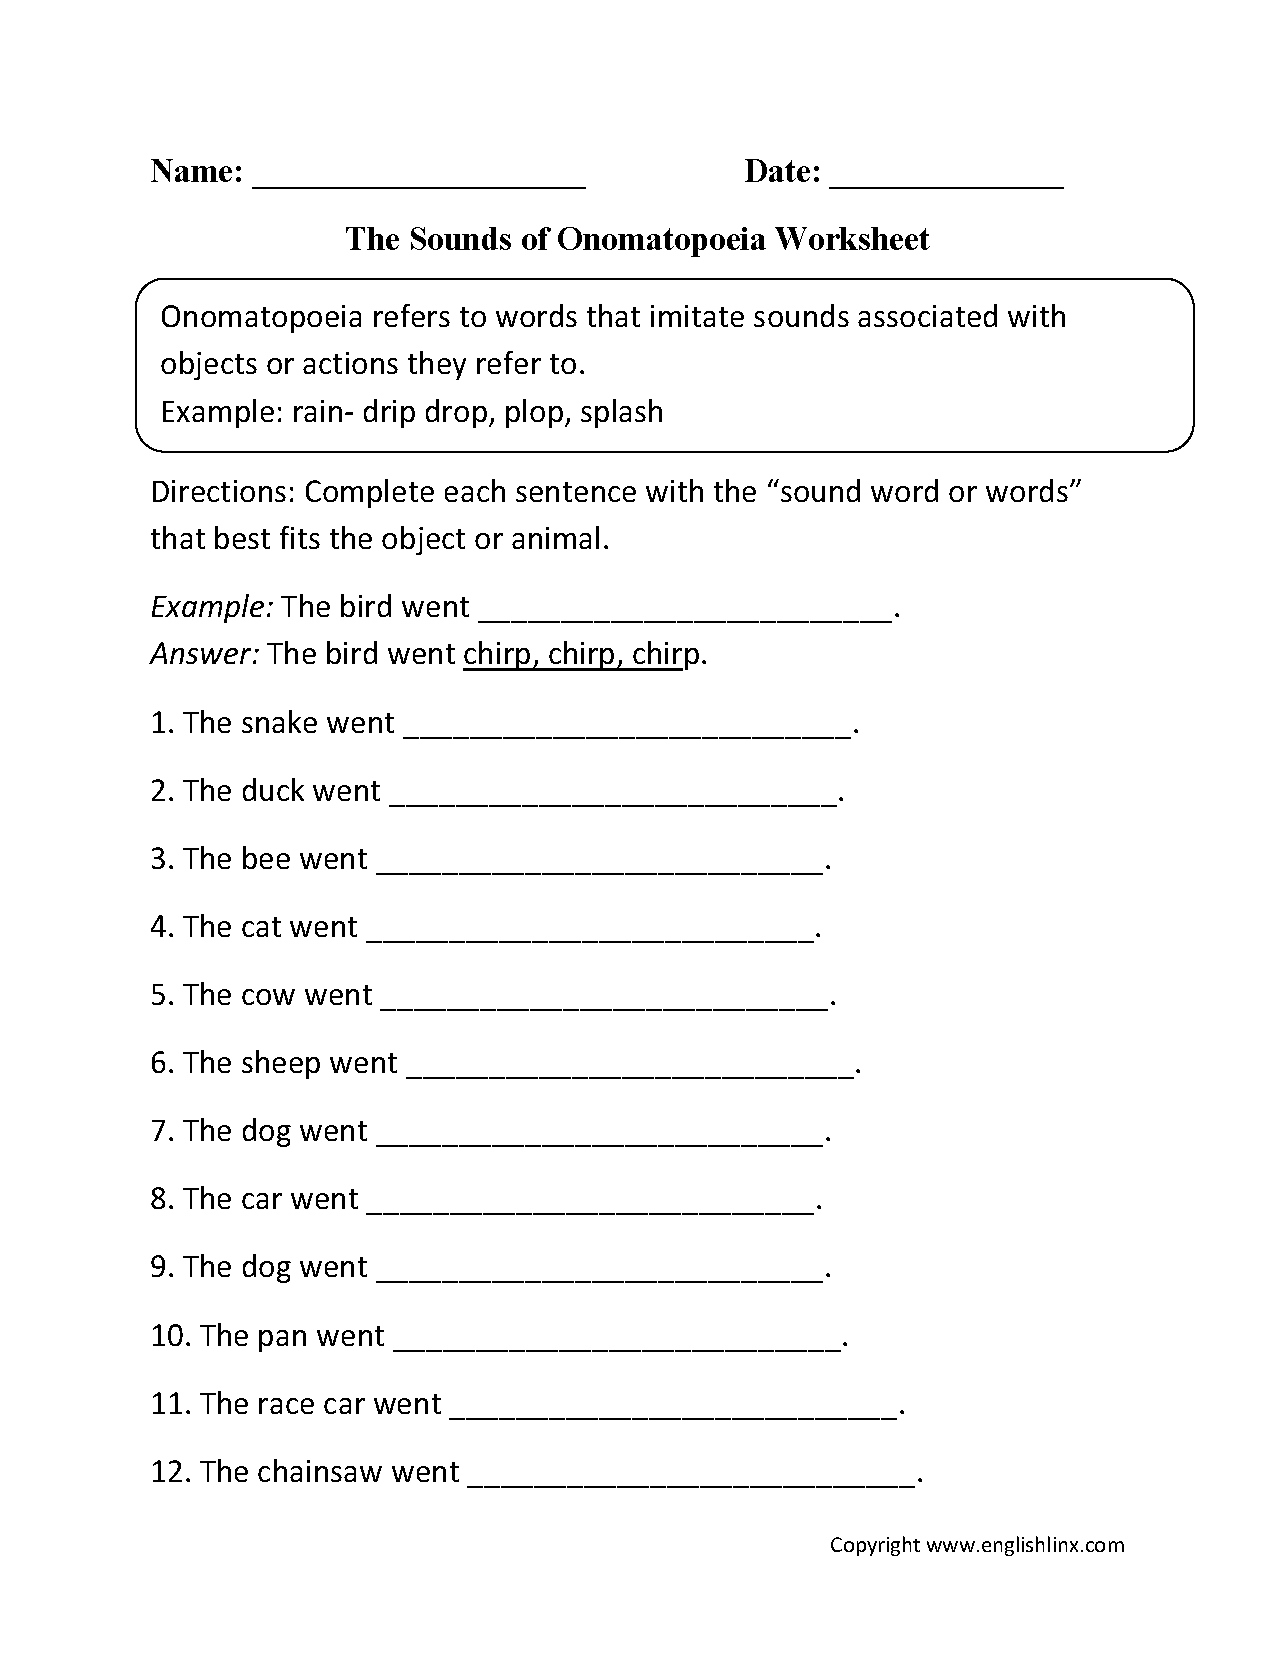 Aldiablosus  Pleasant Englishlinxcom  Onomatopoeia Worksheets With Fair Worksheet With Breathtaking Basic Fact Practice Worksheets Also Free French Worksheets Printable In Addition Decimal Place Worksheets And Reflexive Pronouns Exercises Worksheets As Well As Grade  Graphing Worksheets Additionally Year  Column Addition Worksheets From Englishlinxcom With Aldiablosus  Fair Englishlinxcom  Onomatopoeia Worksheets With Breathtaking Worksheet And Pleasant Basic Fact Practice Worksheets Also Free French Worksheets Printable In Addition Decimal Place Worksheets From Englishlinxcom